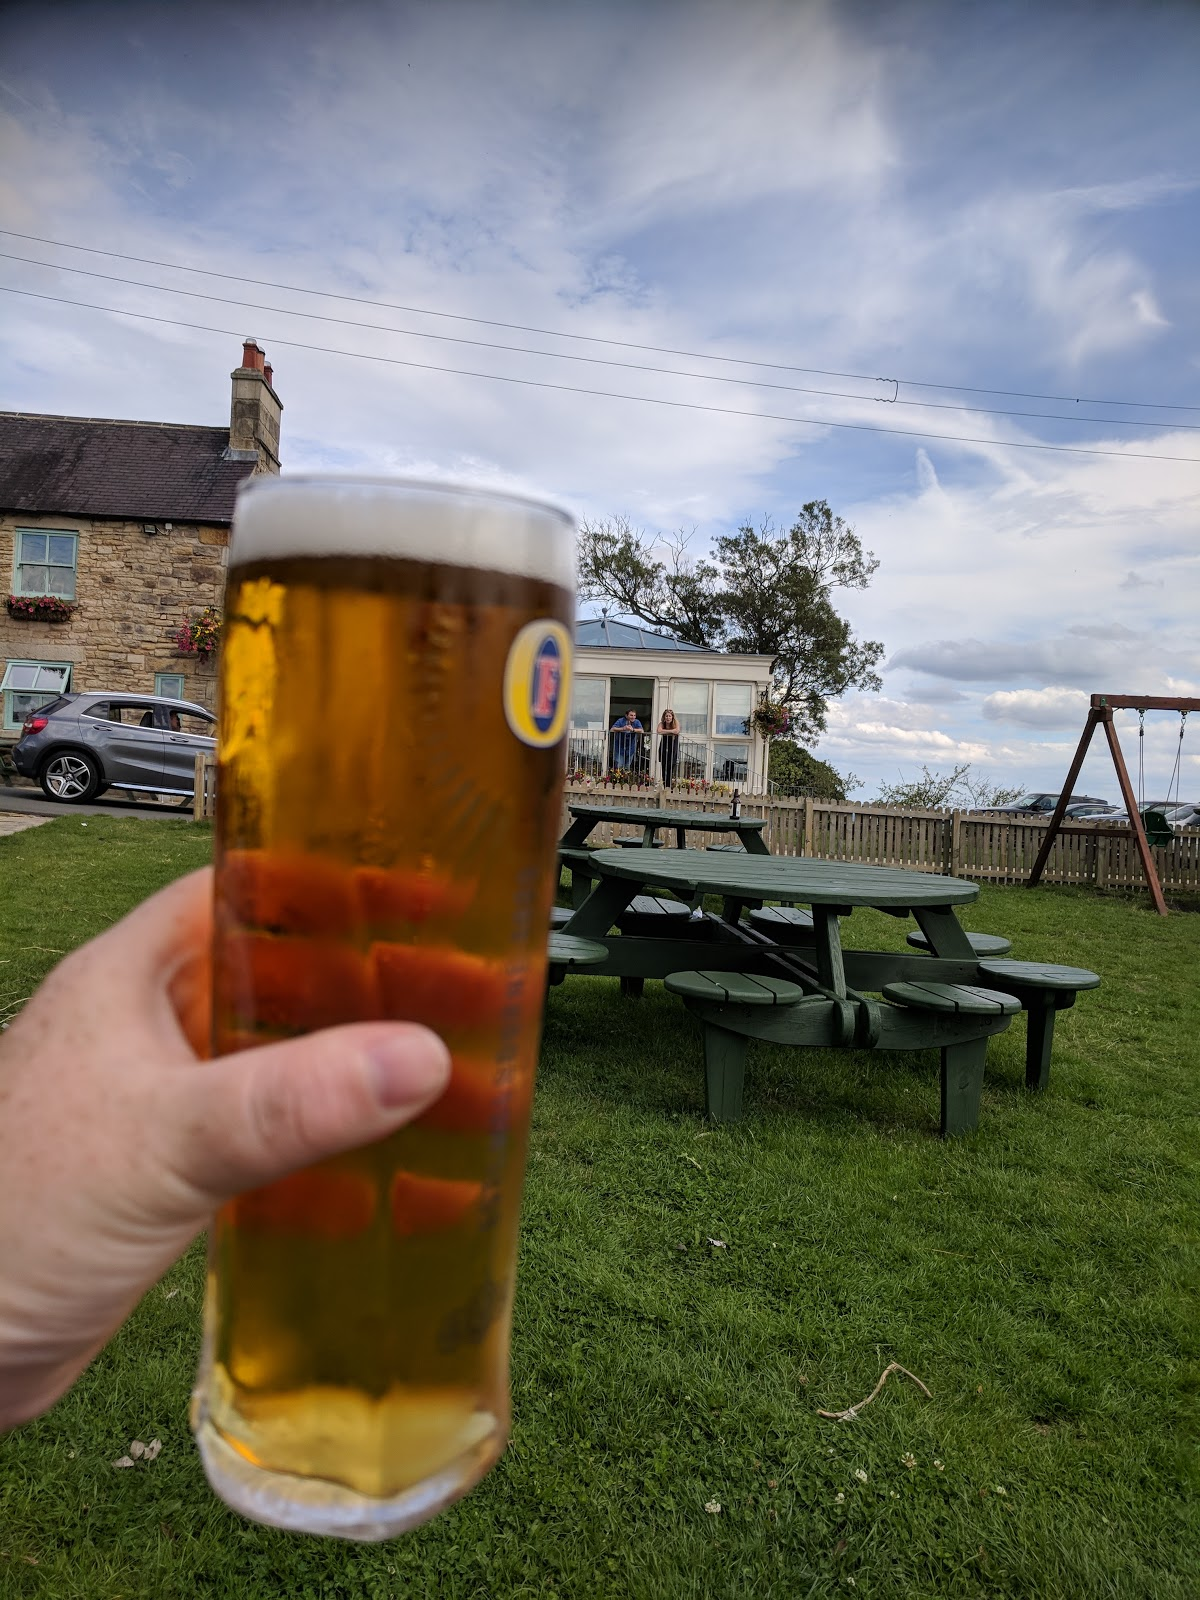 Tanfield Railway | Britain's Oldest Railway & a Picnic at Causey Arch - beer at The Black Horse Beamish